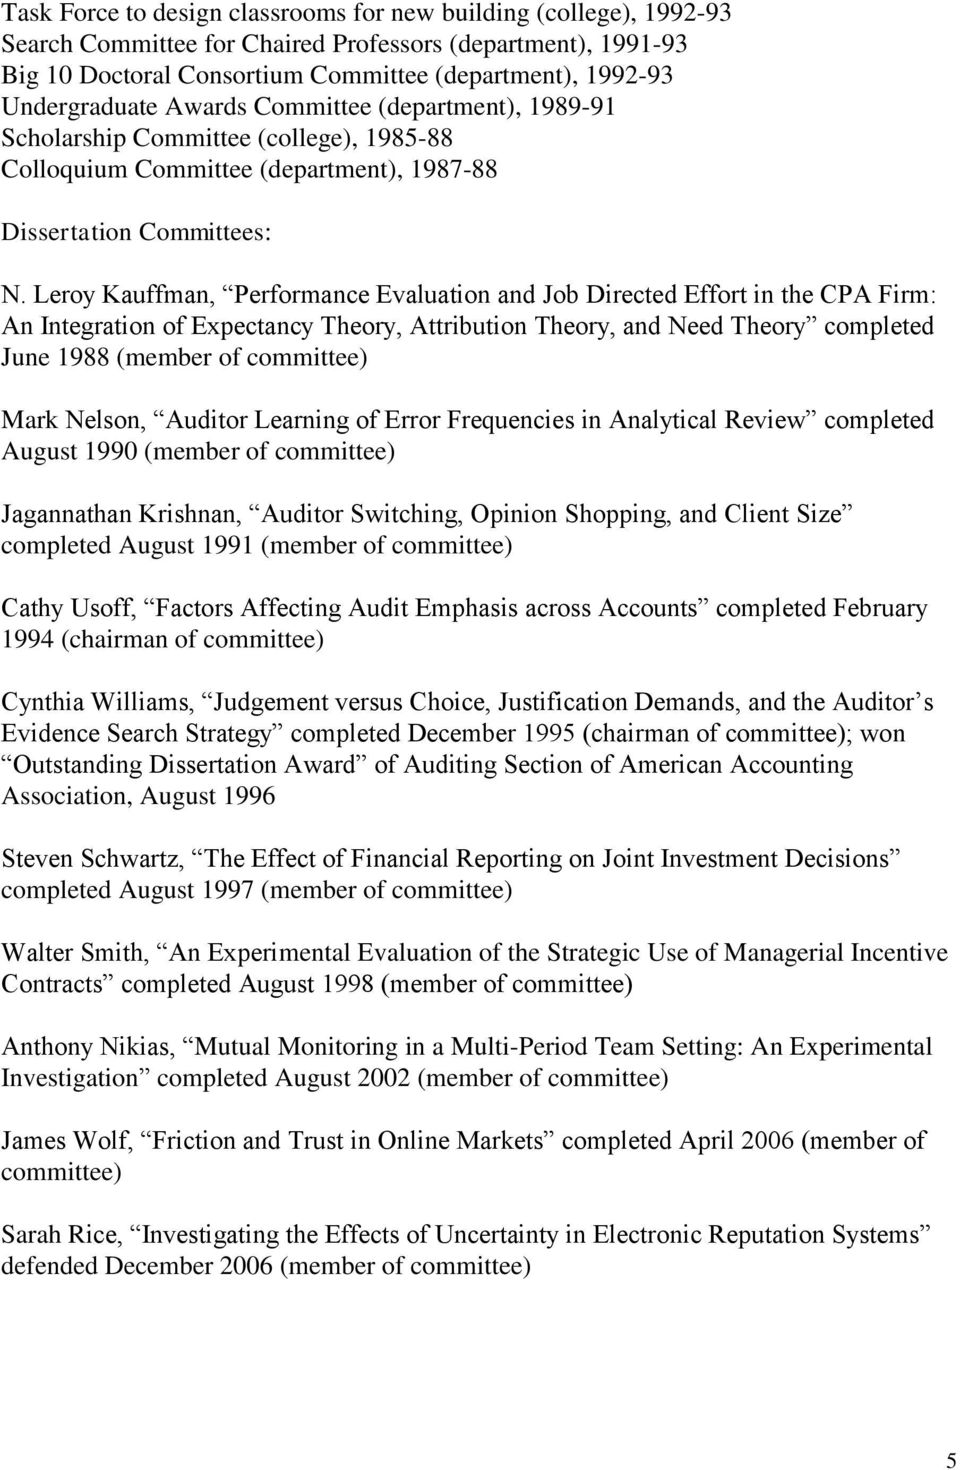 Leroy Kauffman, Performance Evaluation and Job Directed Effort in the CPA Firm: An Integration of Expectancy Theory, Attribution Theory, and Need Theory completed June 1988 (member of committee) Mark